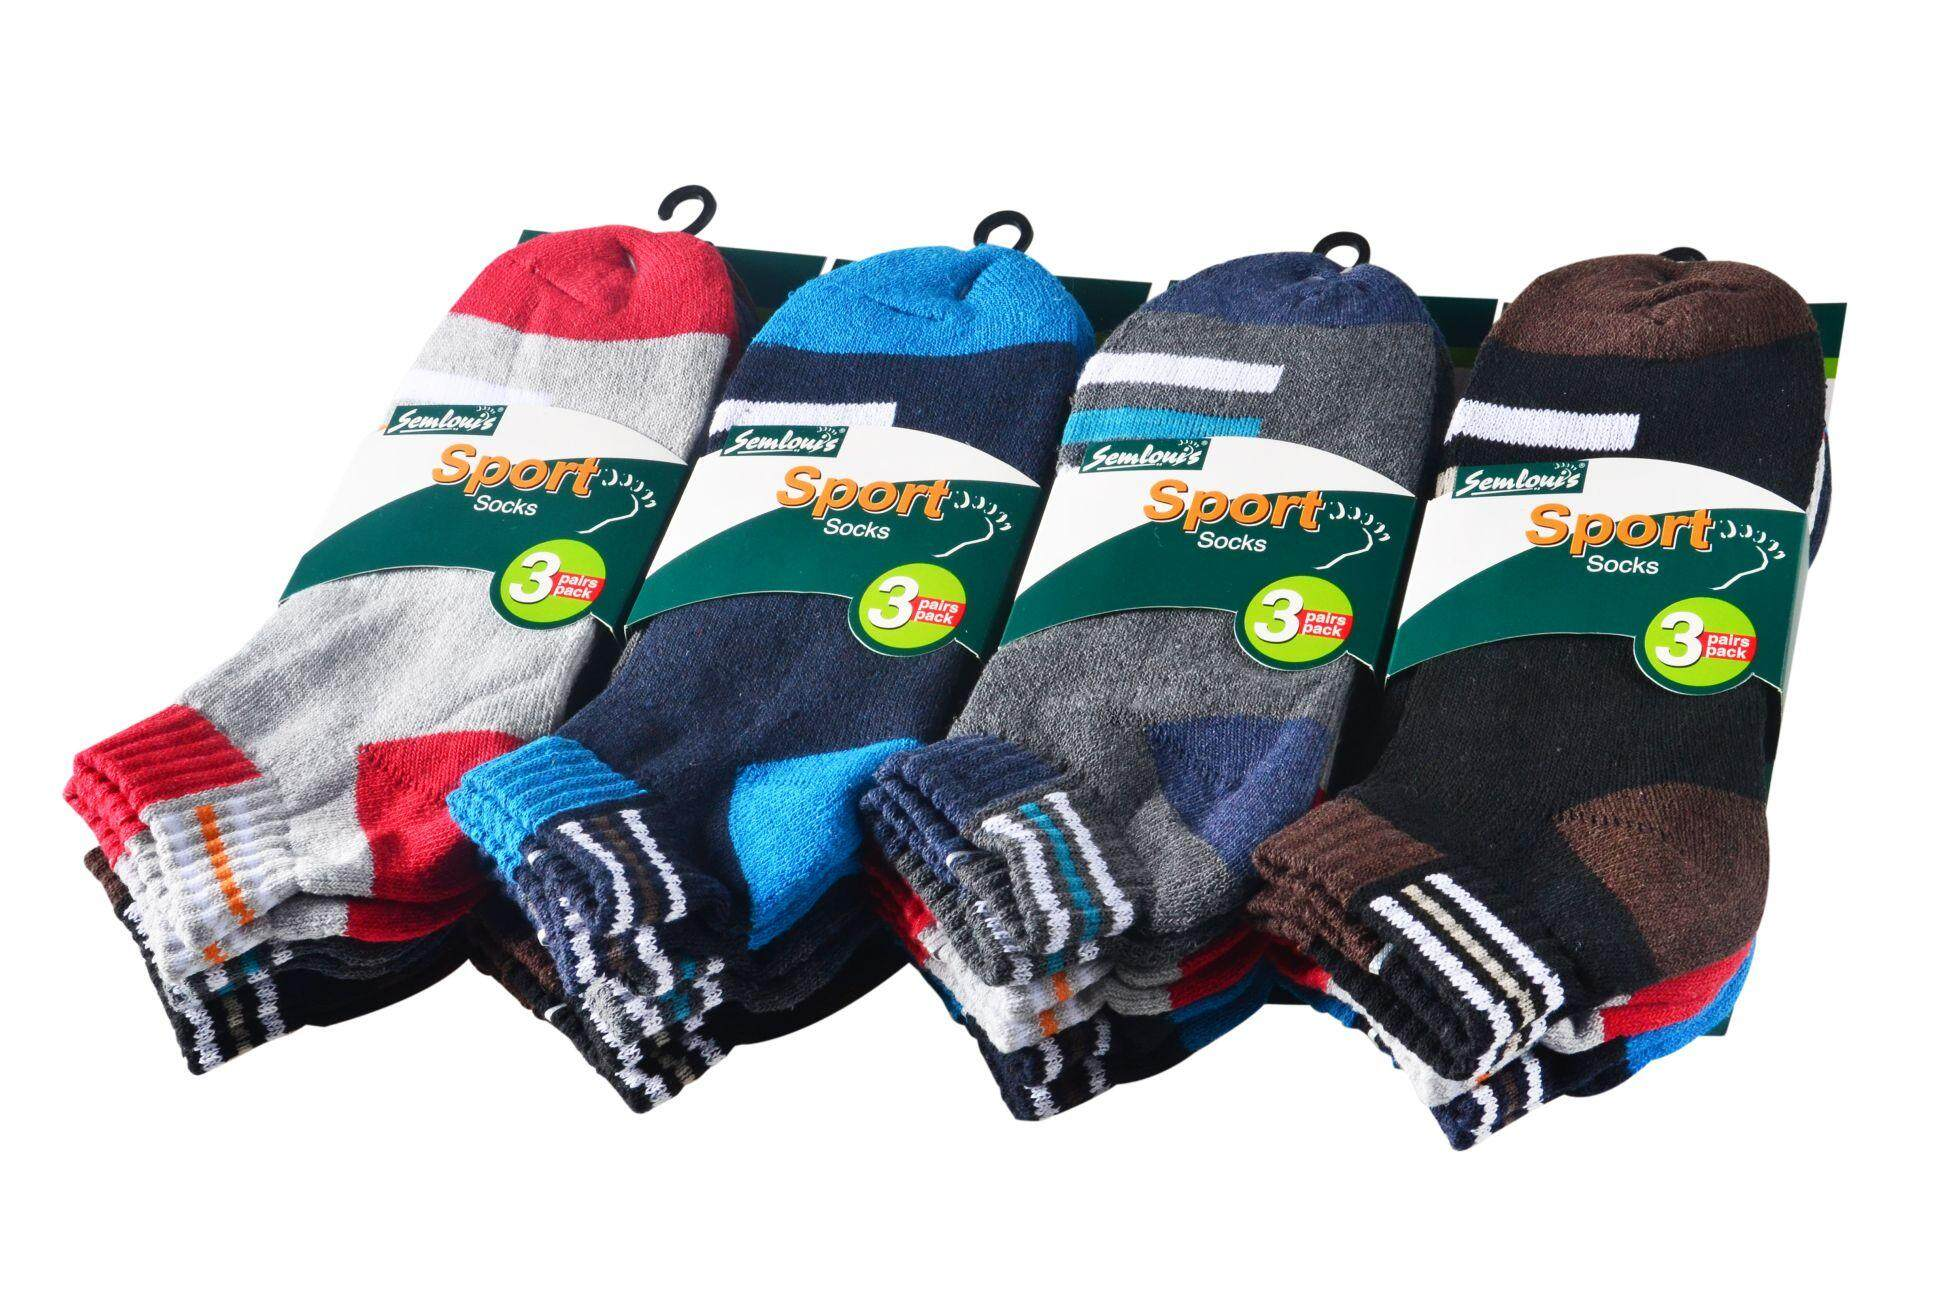 Semlouis 3 in 1 Ankle Cushion Base Socks - Basic Design with Lines / PKT